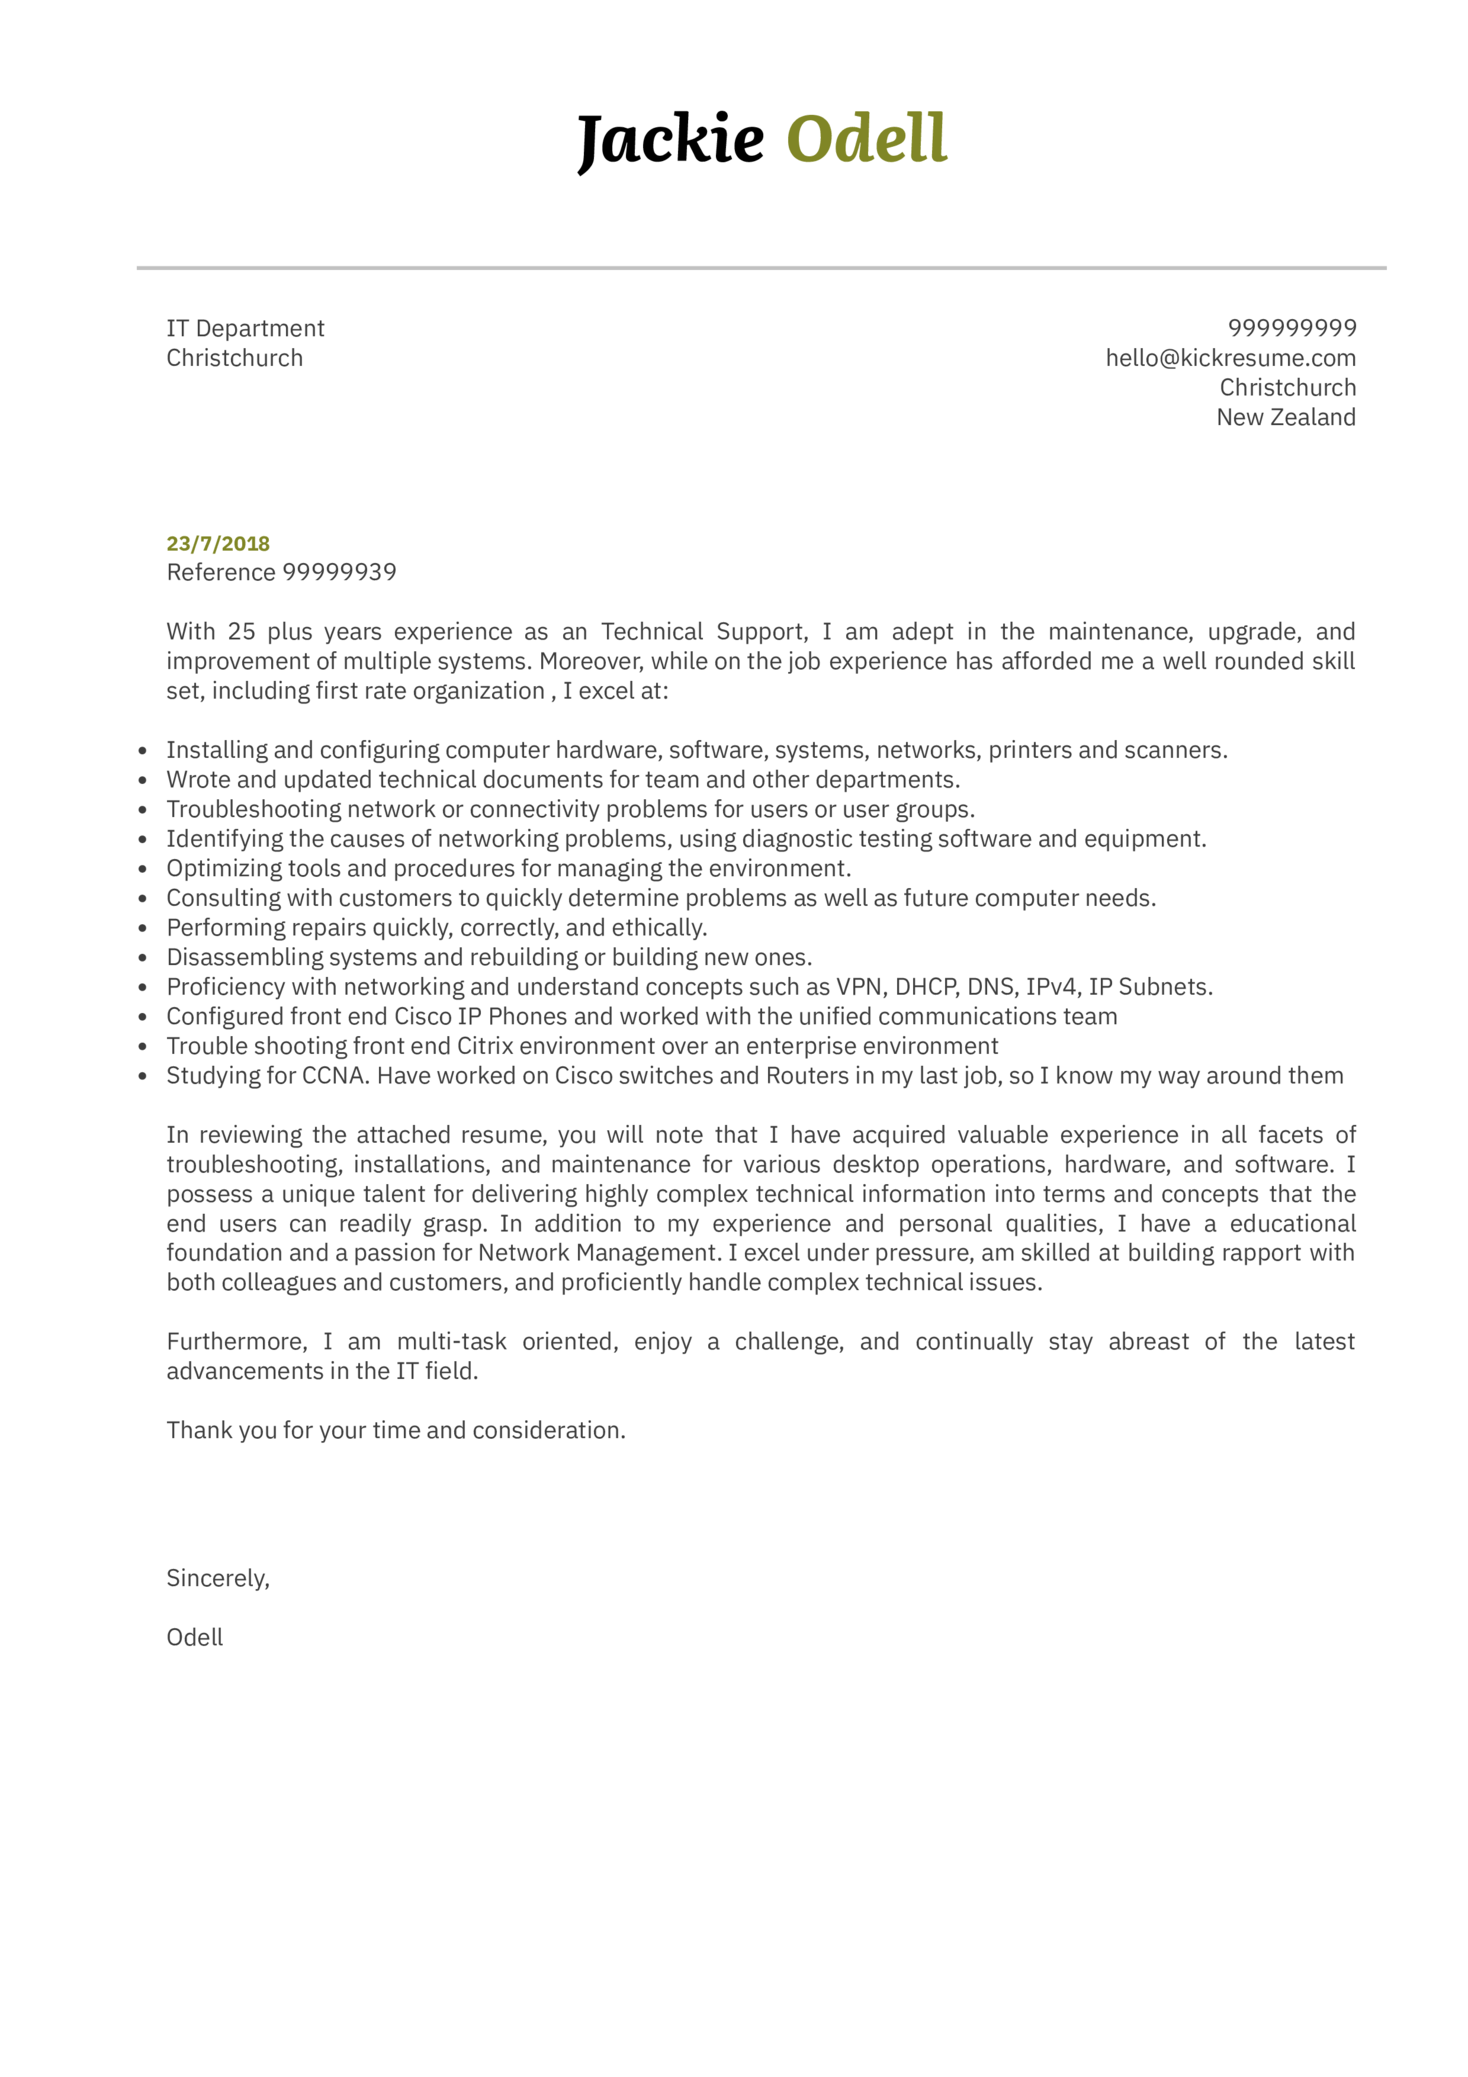 Cover Letter Examples by Real People: Sr. Technical support ...